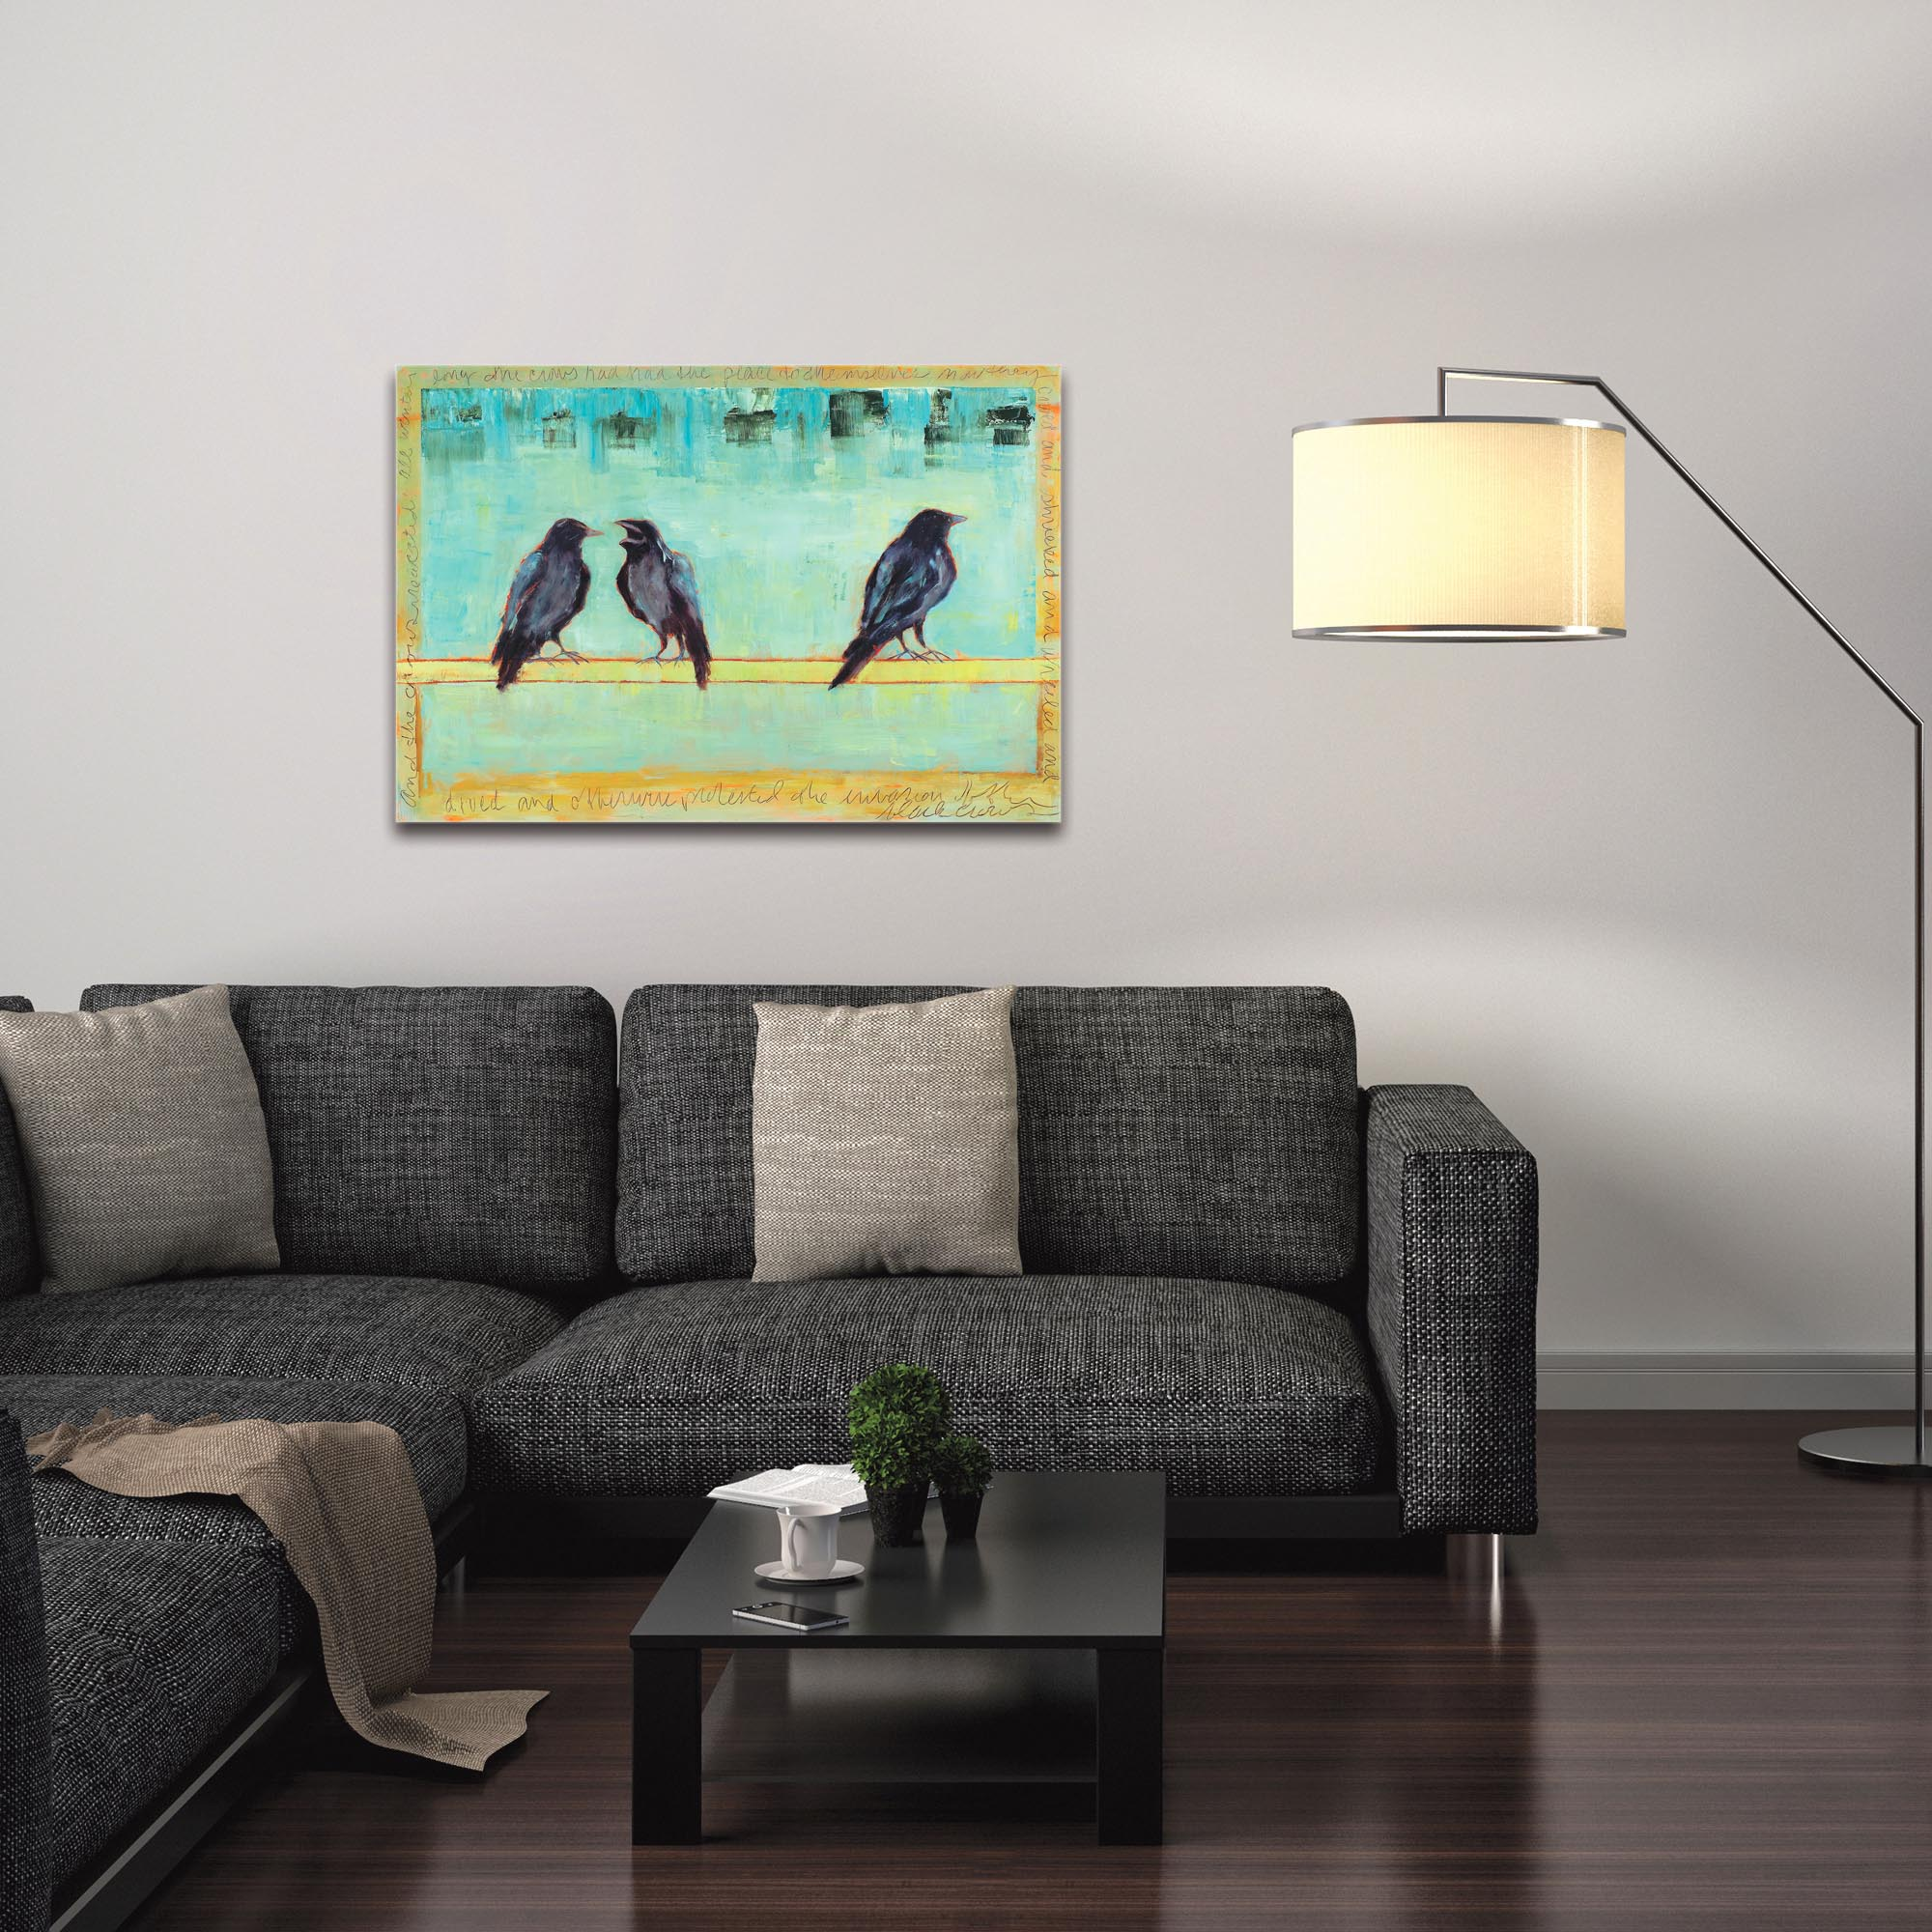 Contemporary Wall Art 'Crow Bar 2' - Urban Birds Decor on Metal or Plexiglass - Image 3